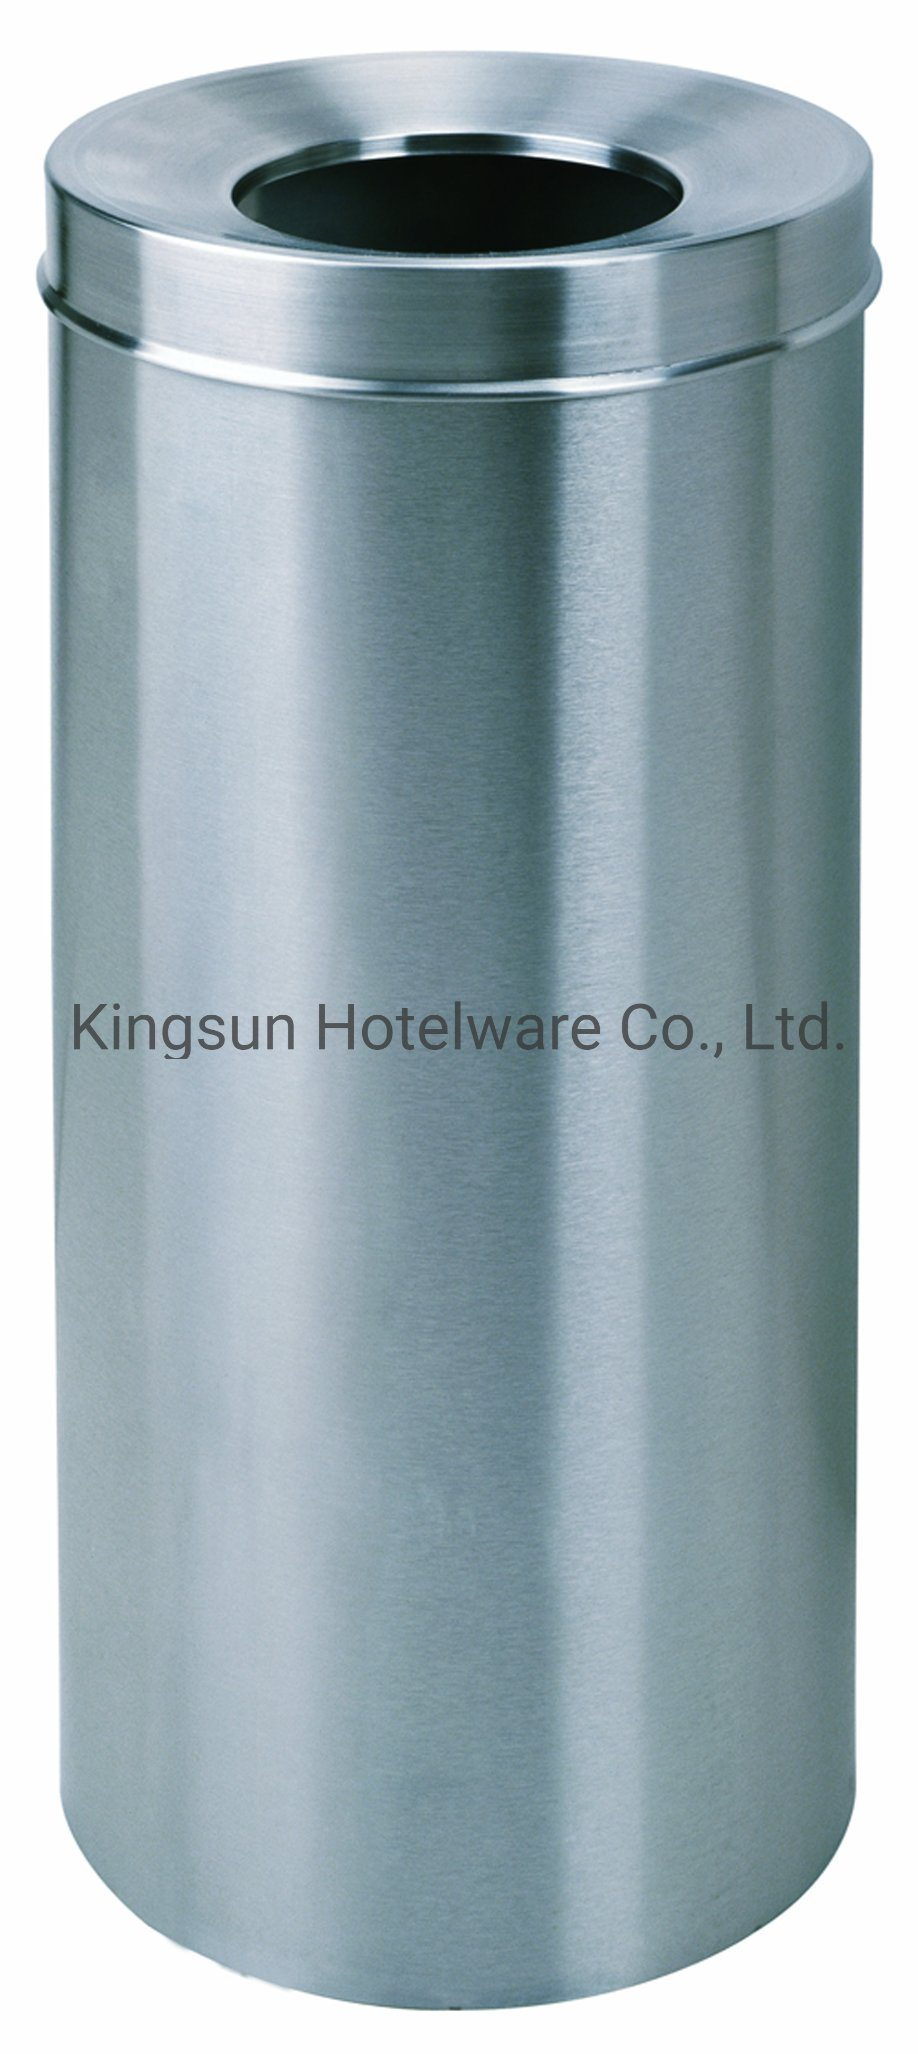 Large Metal Trash Cans For Hotel Lobby